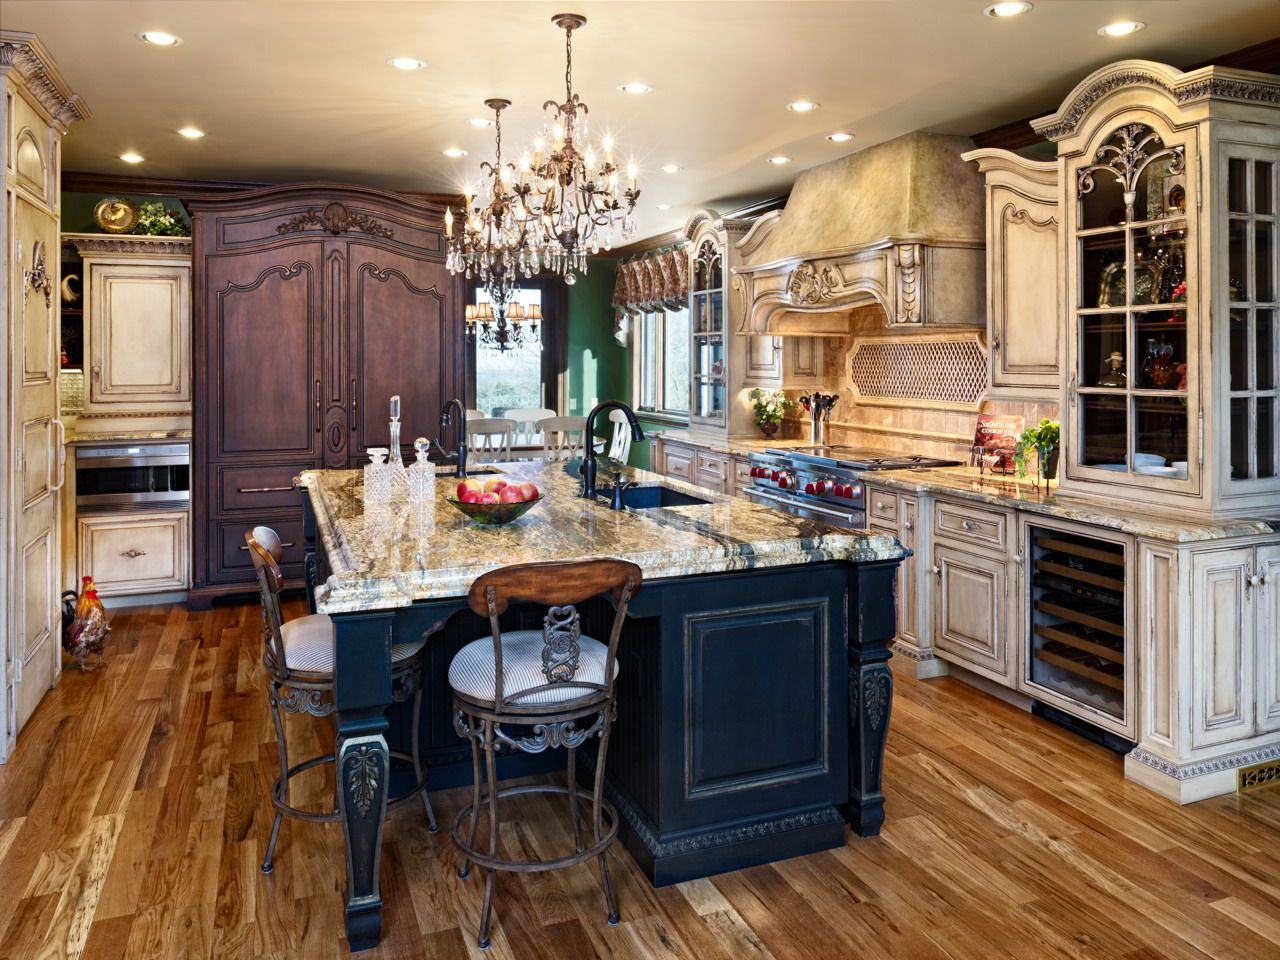 Kitchen Design Boulder Traditional Old World Custom Kitchen  Boulder Colorado  Interior